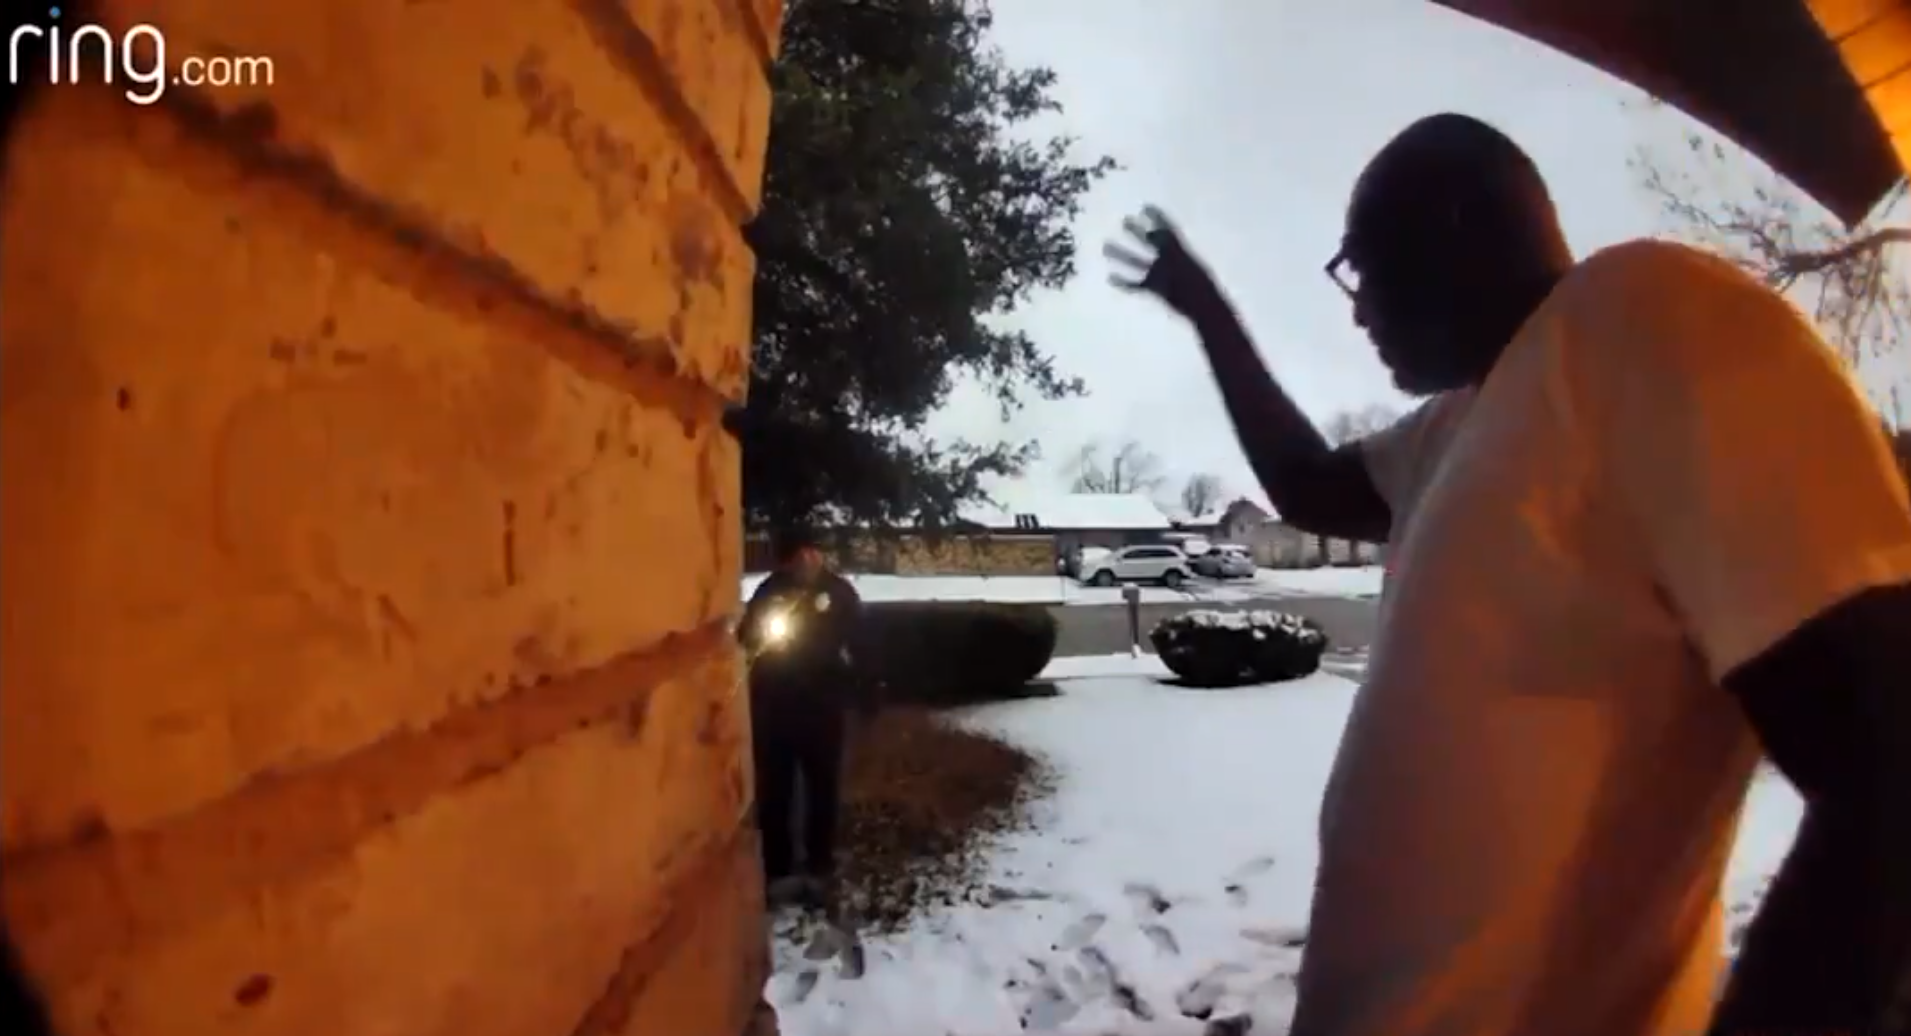 Viral Video Of Texas Pastor Shot and Killed By Police [VIDEO]